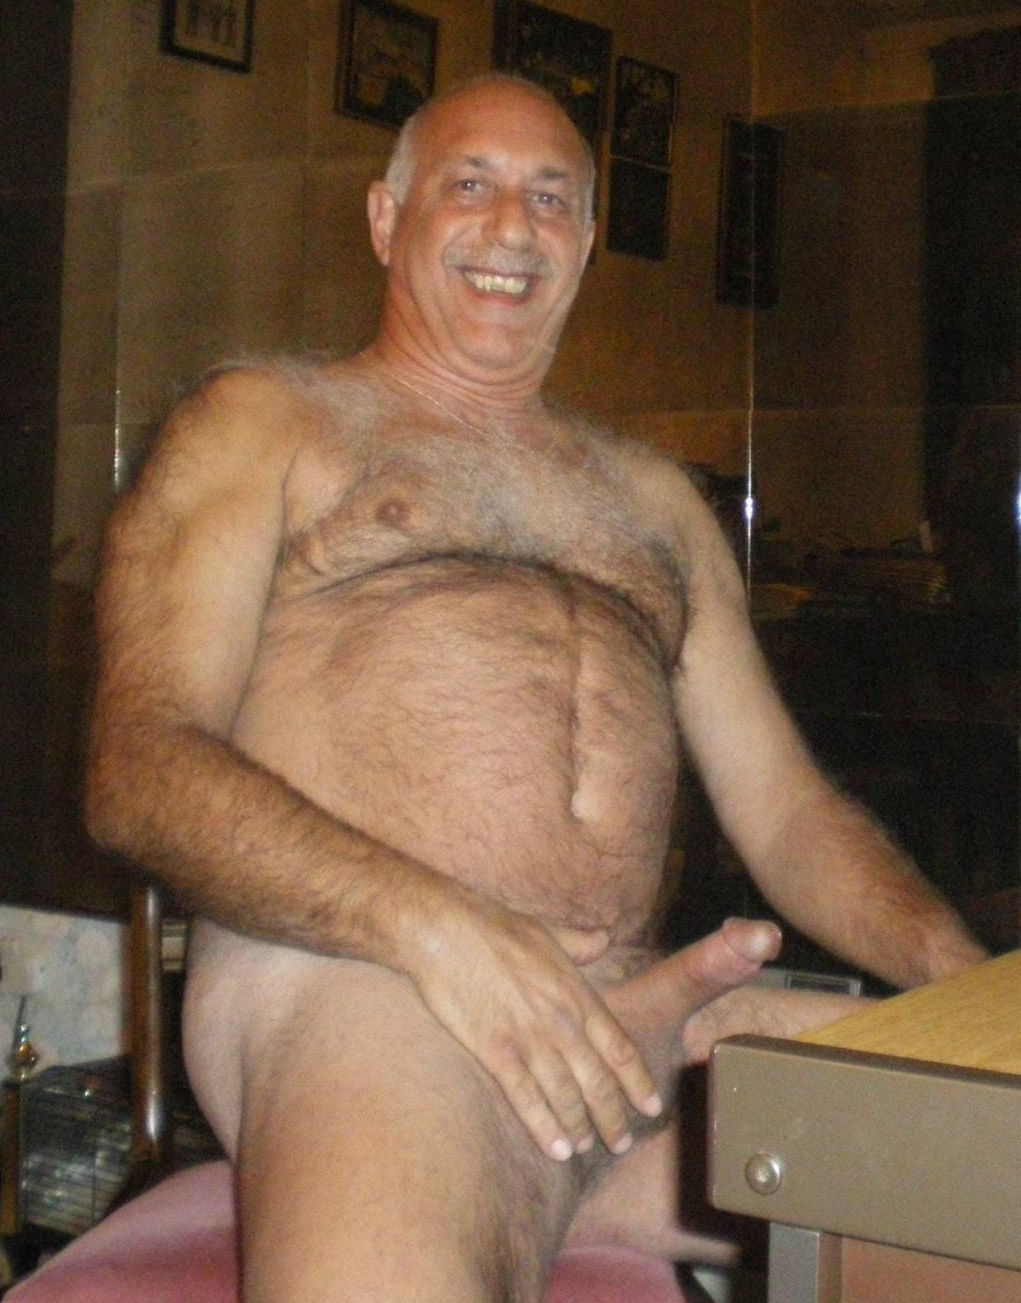 hairy senior hard dicks - gay mature men